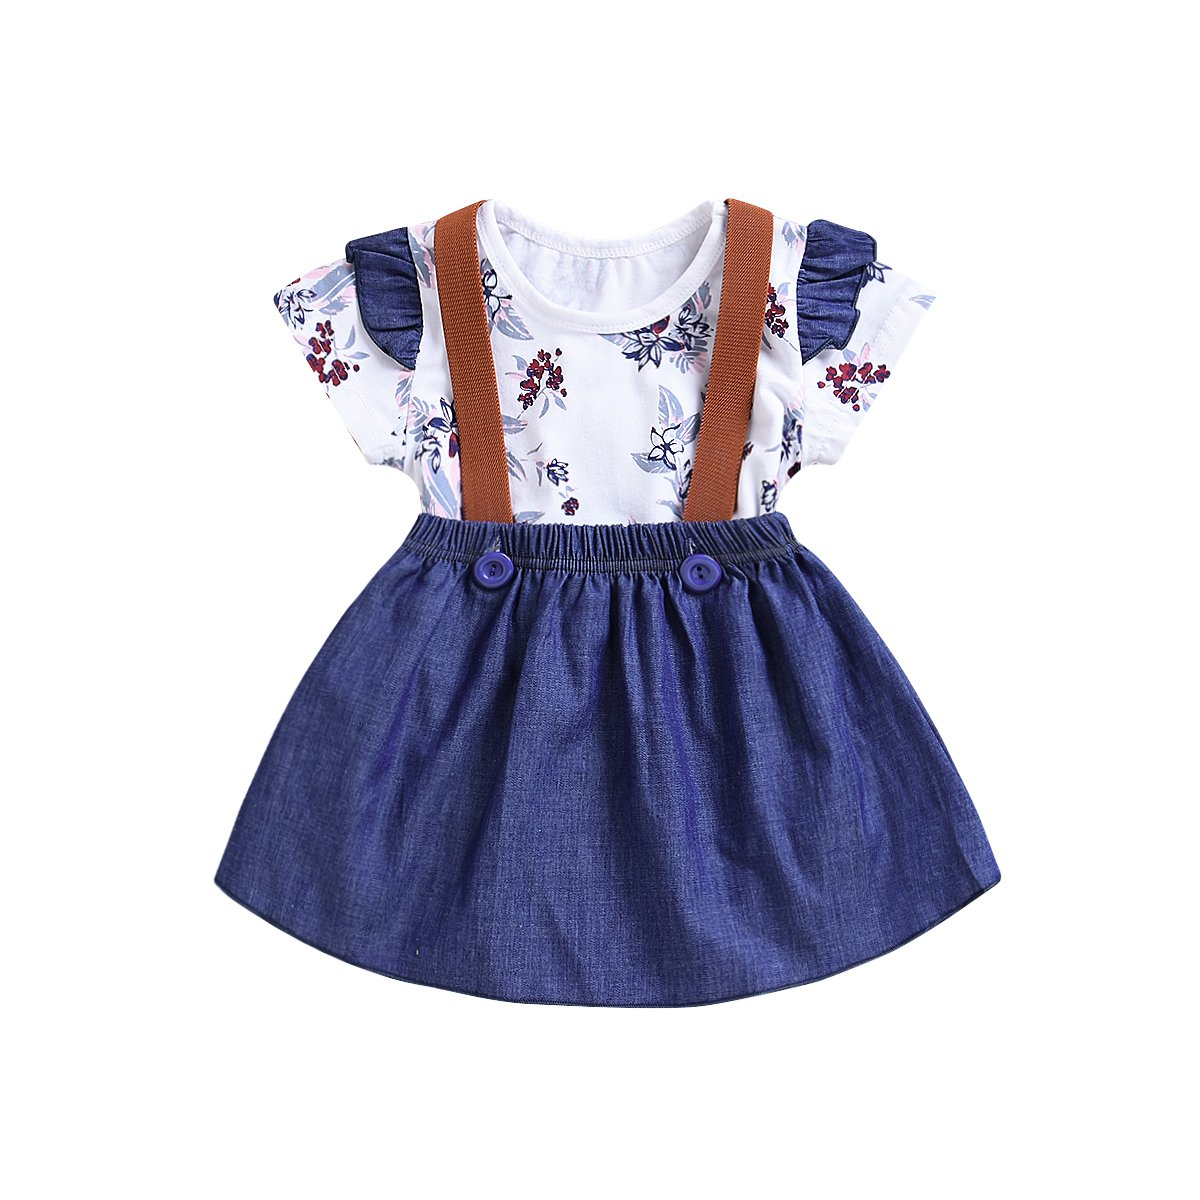 HAPPYMA Toddler Baby Little Girls Strap Suspender Skirt Bow-Knot Princess Casual Dress Overall Outfit